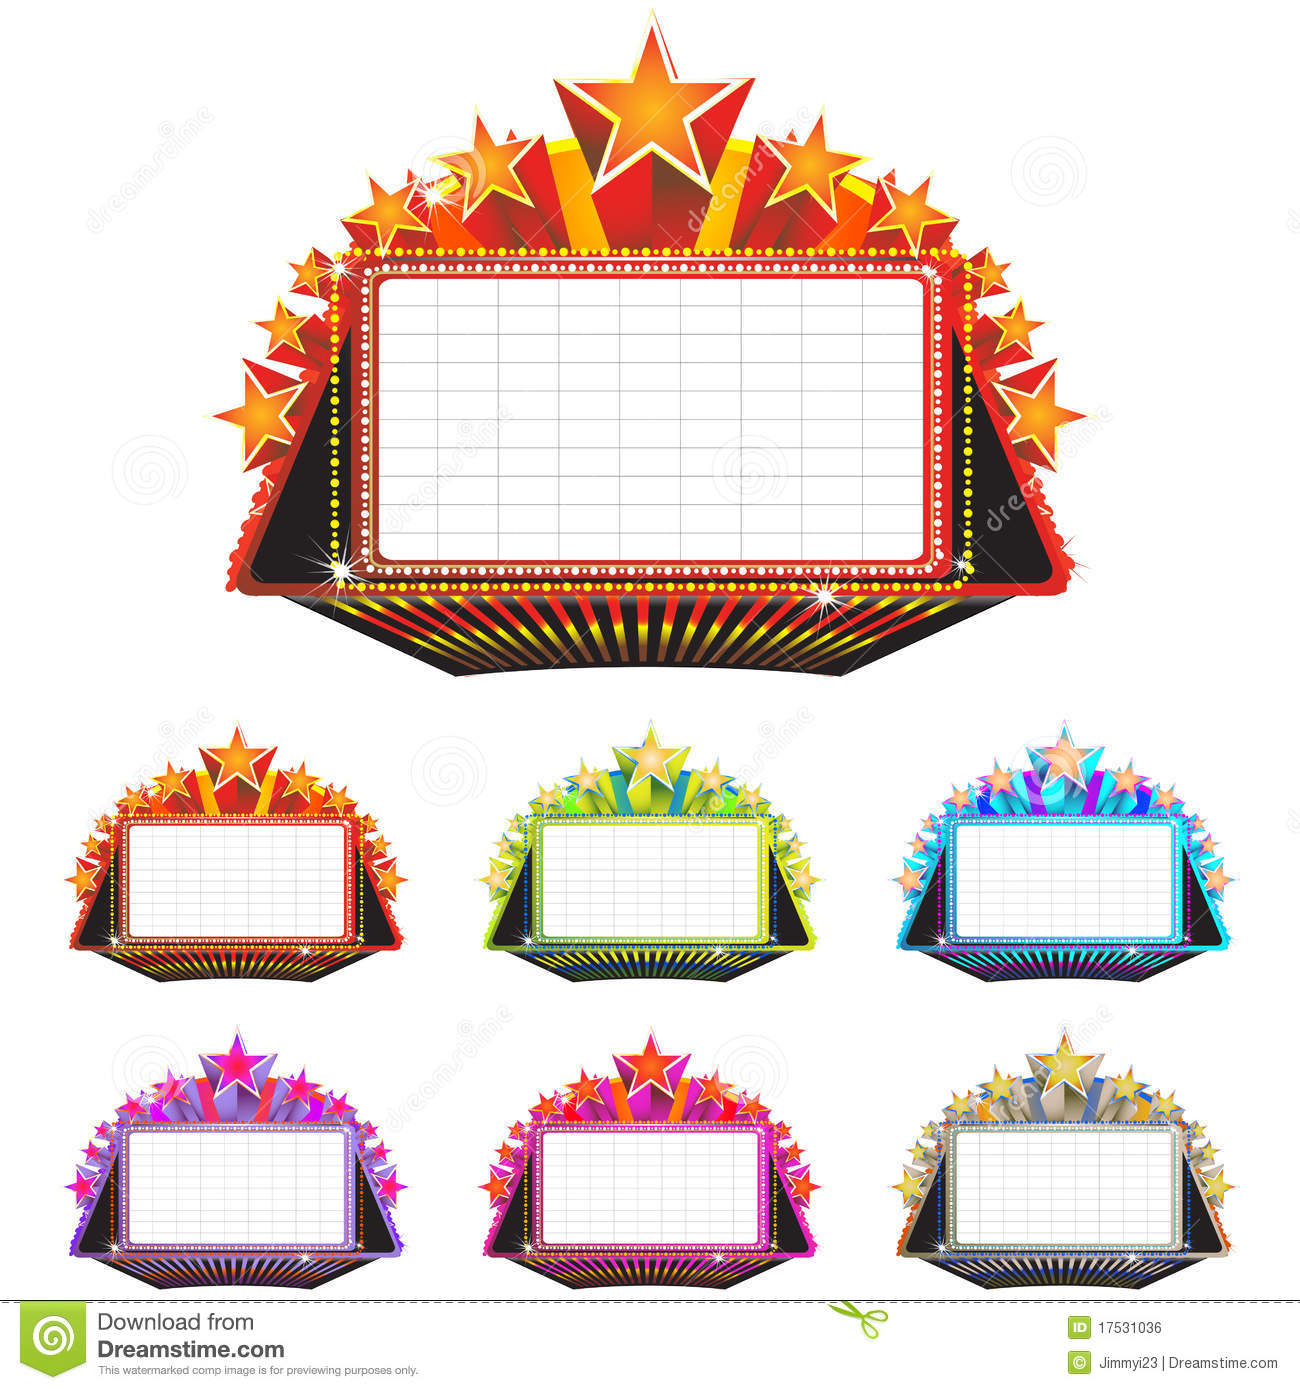 Theater marquee sign stock vector. Illustration of stage.